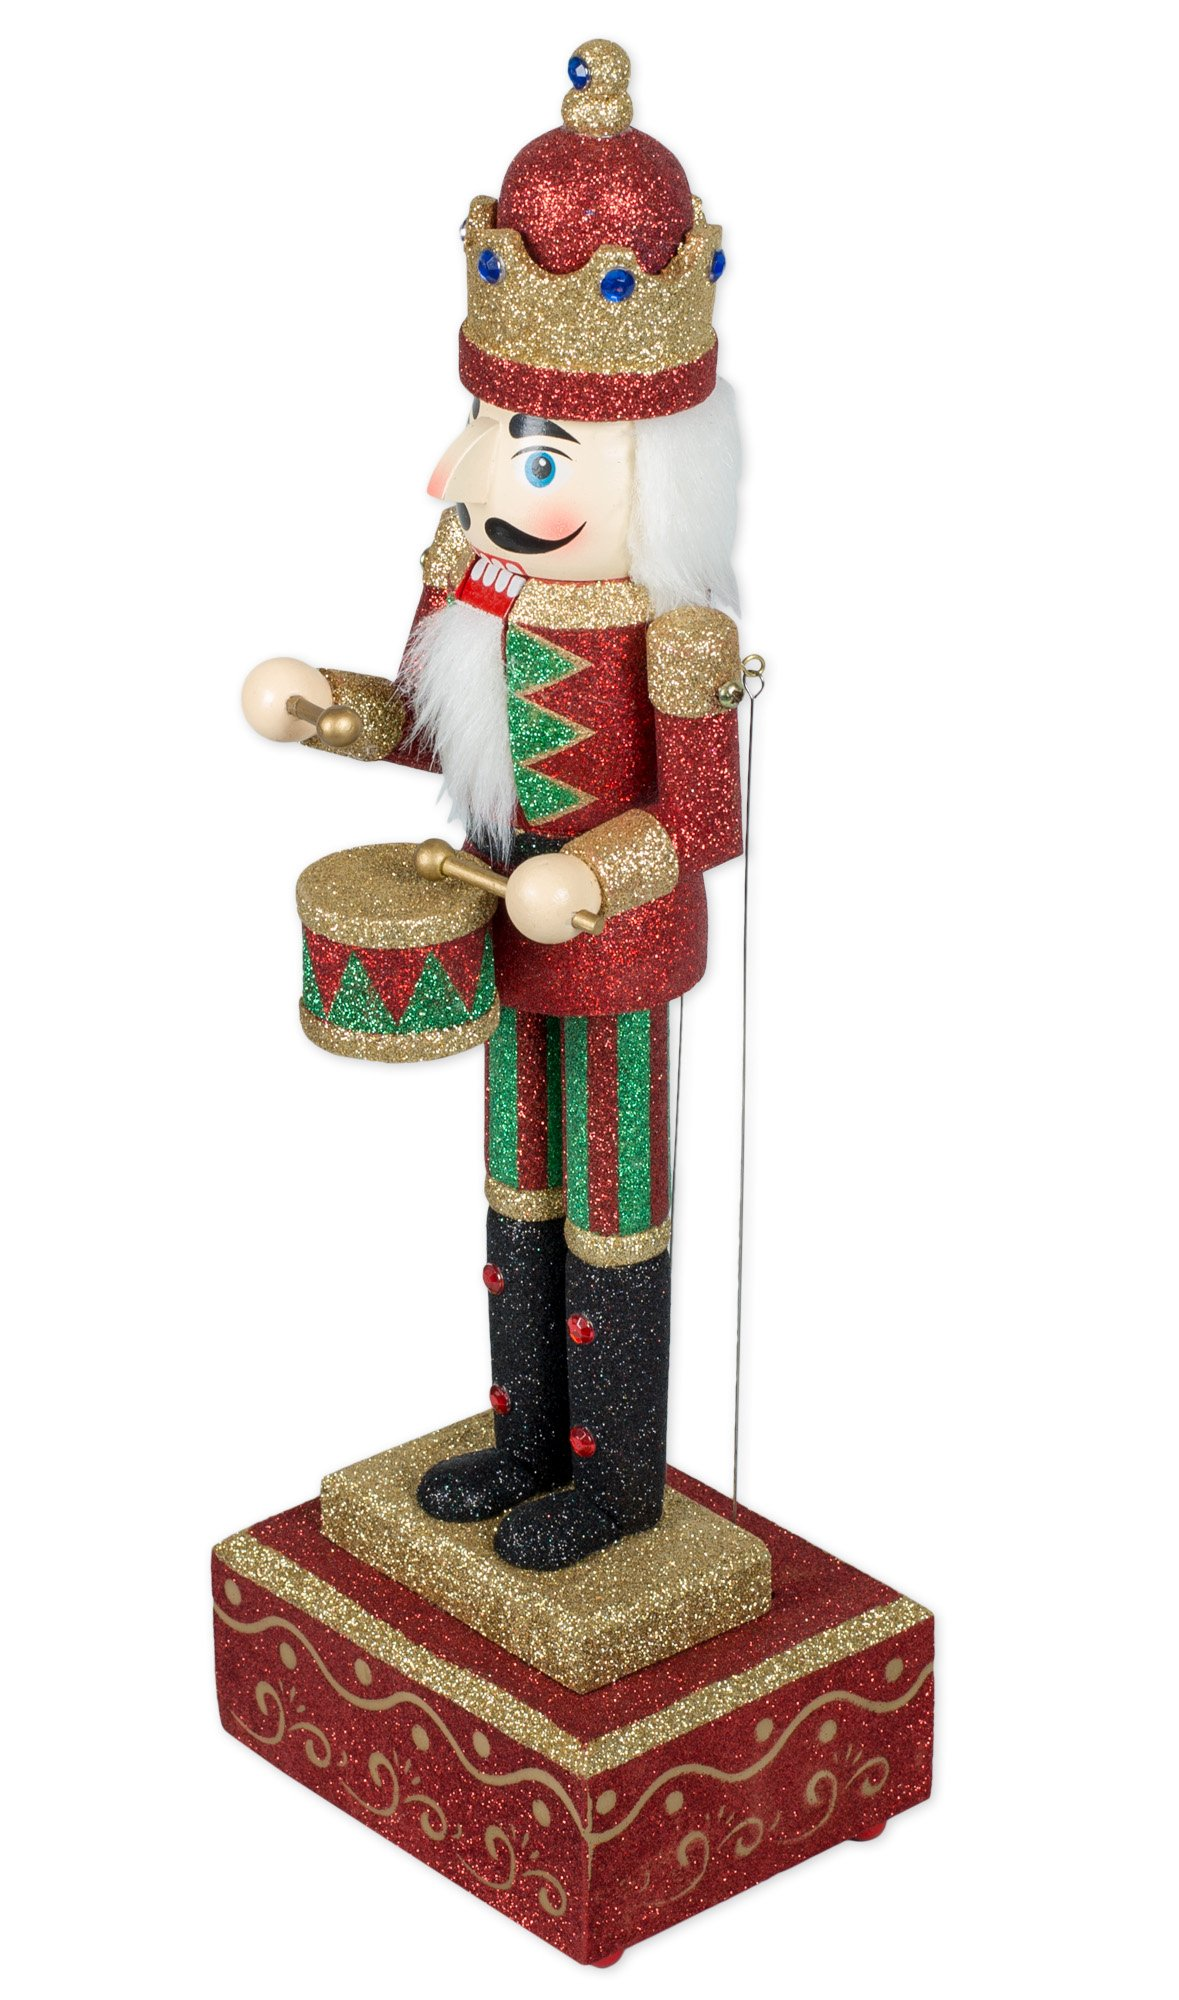 MusicBox Kingdom Big Wooden Nutcracker with Glitter Moves The Arms to The Tune of ''Nutcracker Suite'' Decorative Item by Musicbox Kingdom (Image #3)